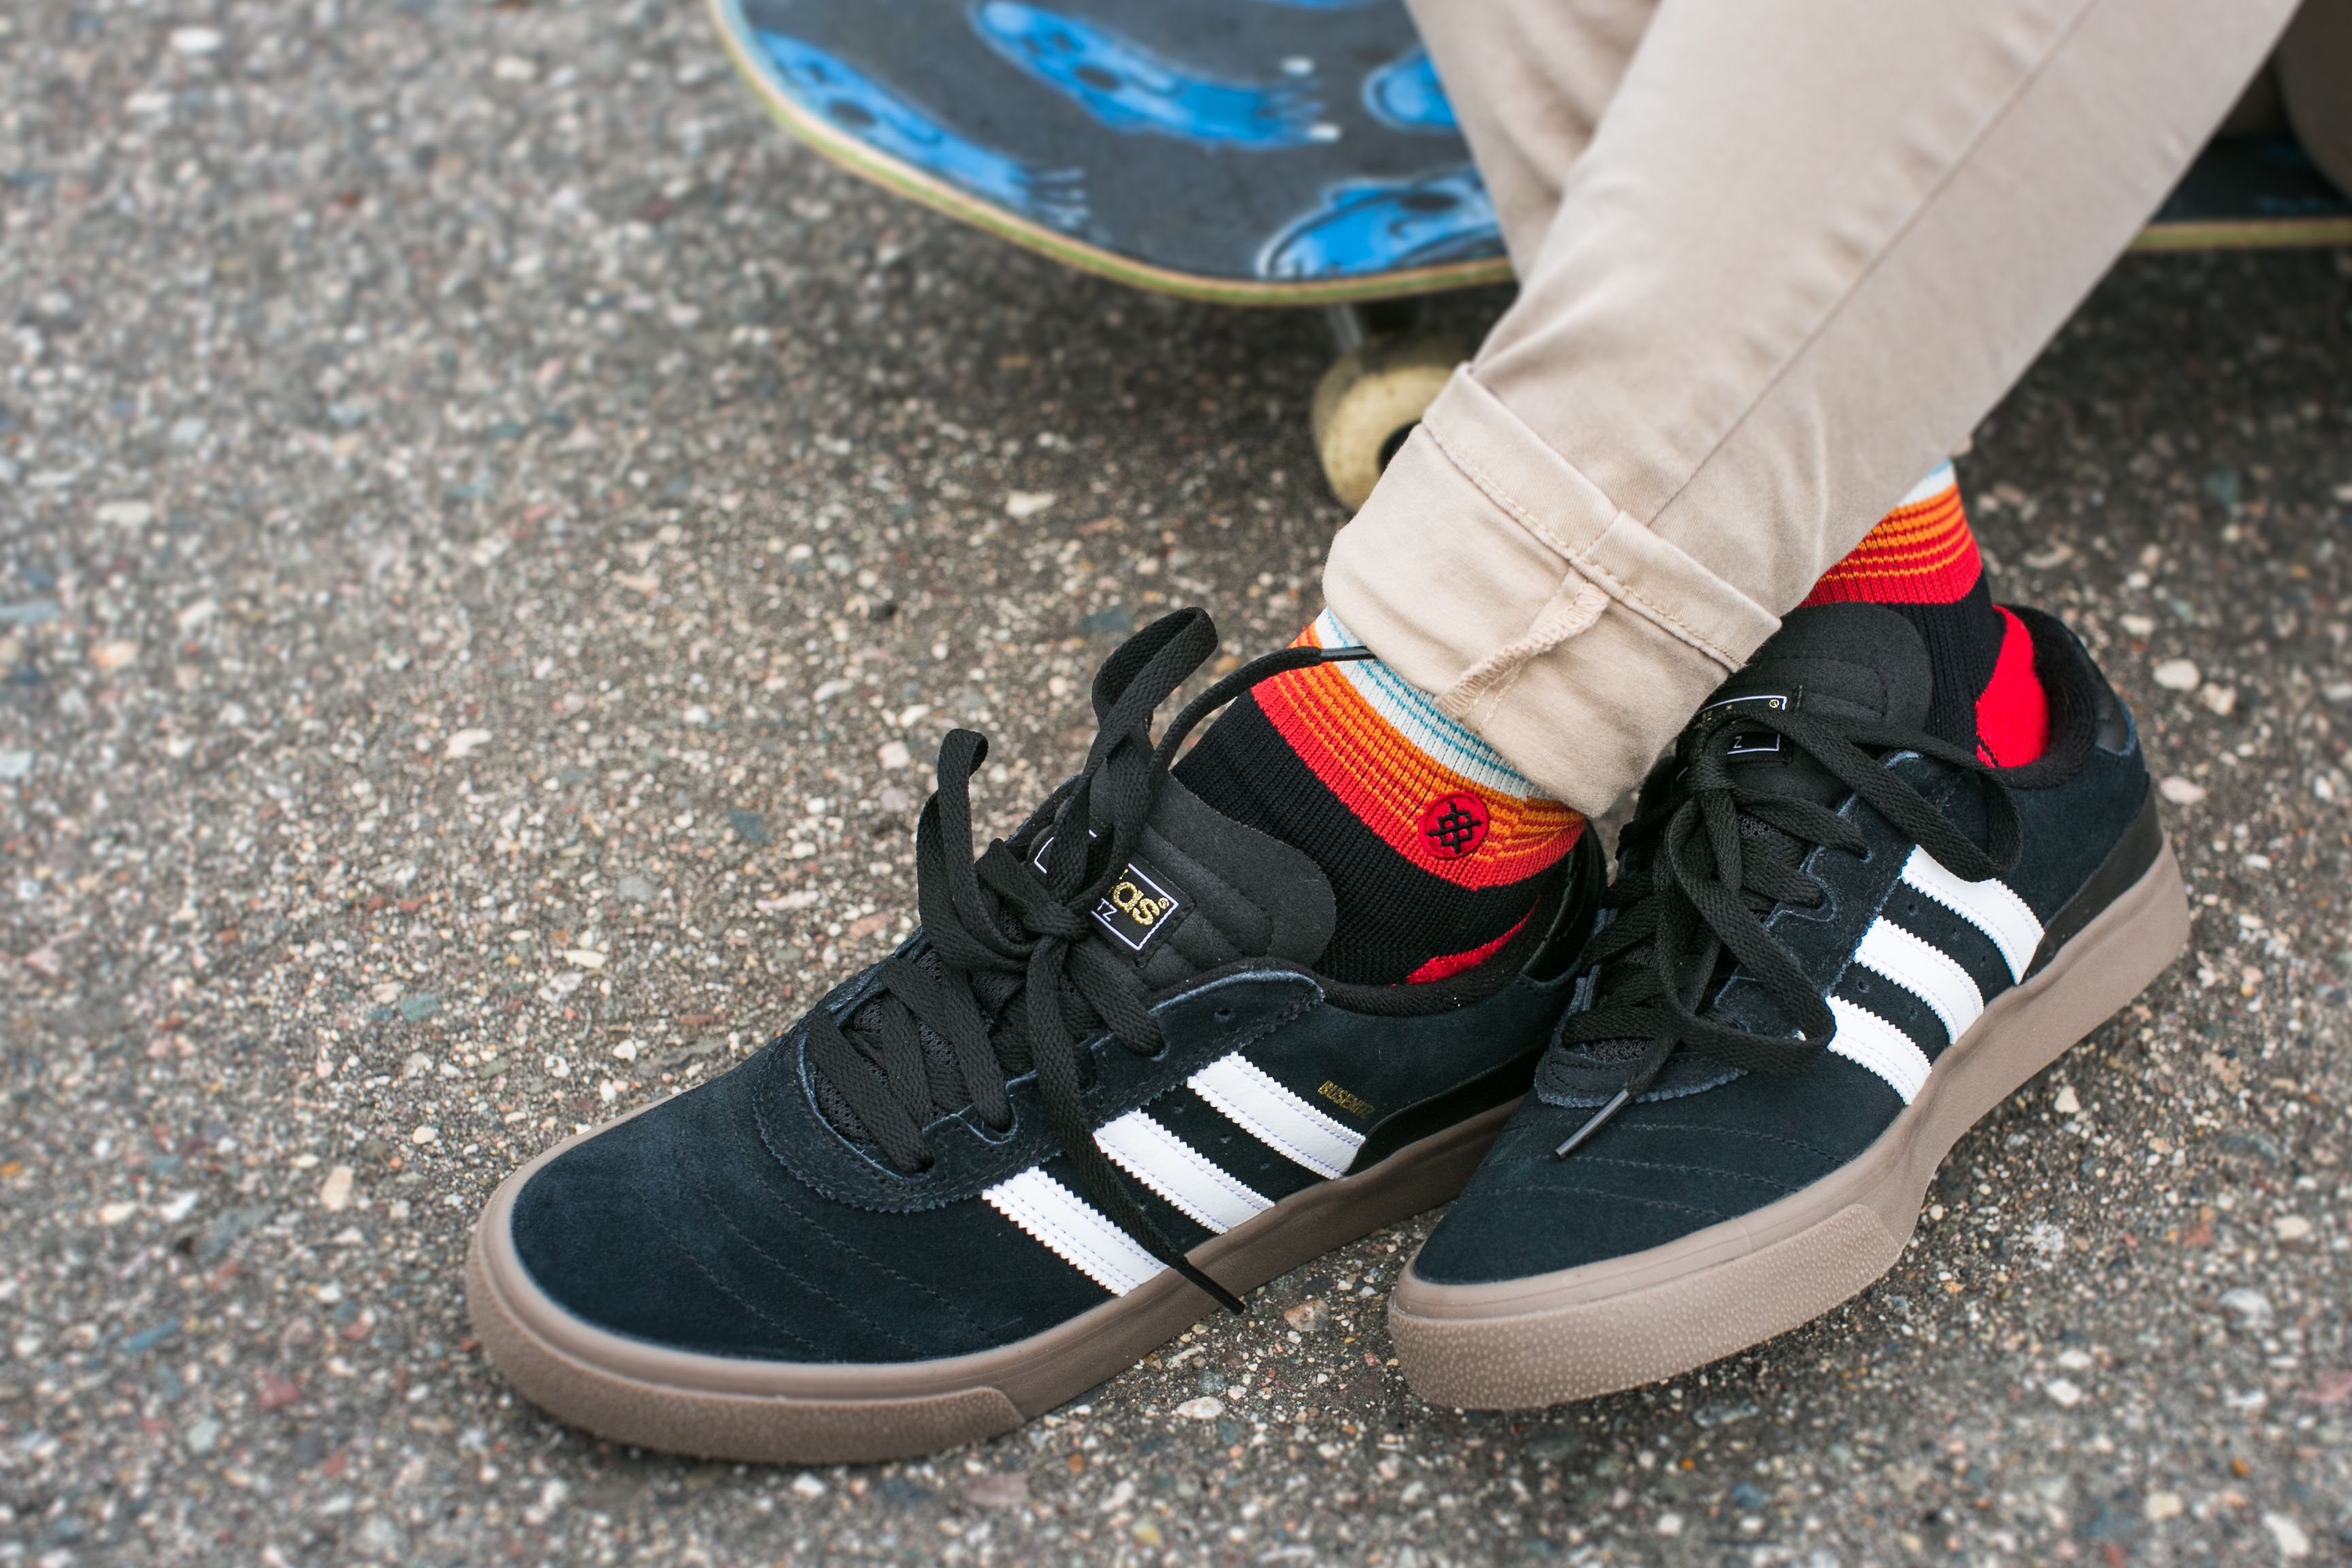 examinons d'abord les chaussures adidas adidas chaussures dame 7de7f7